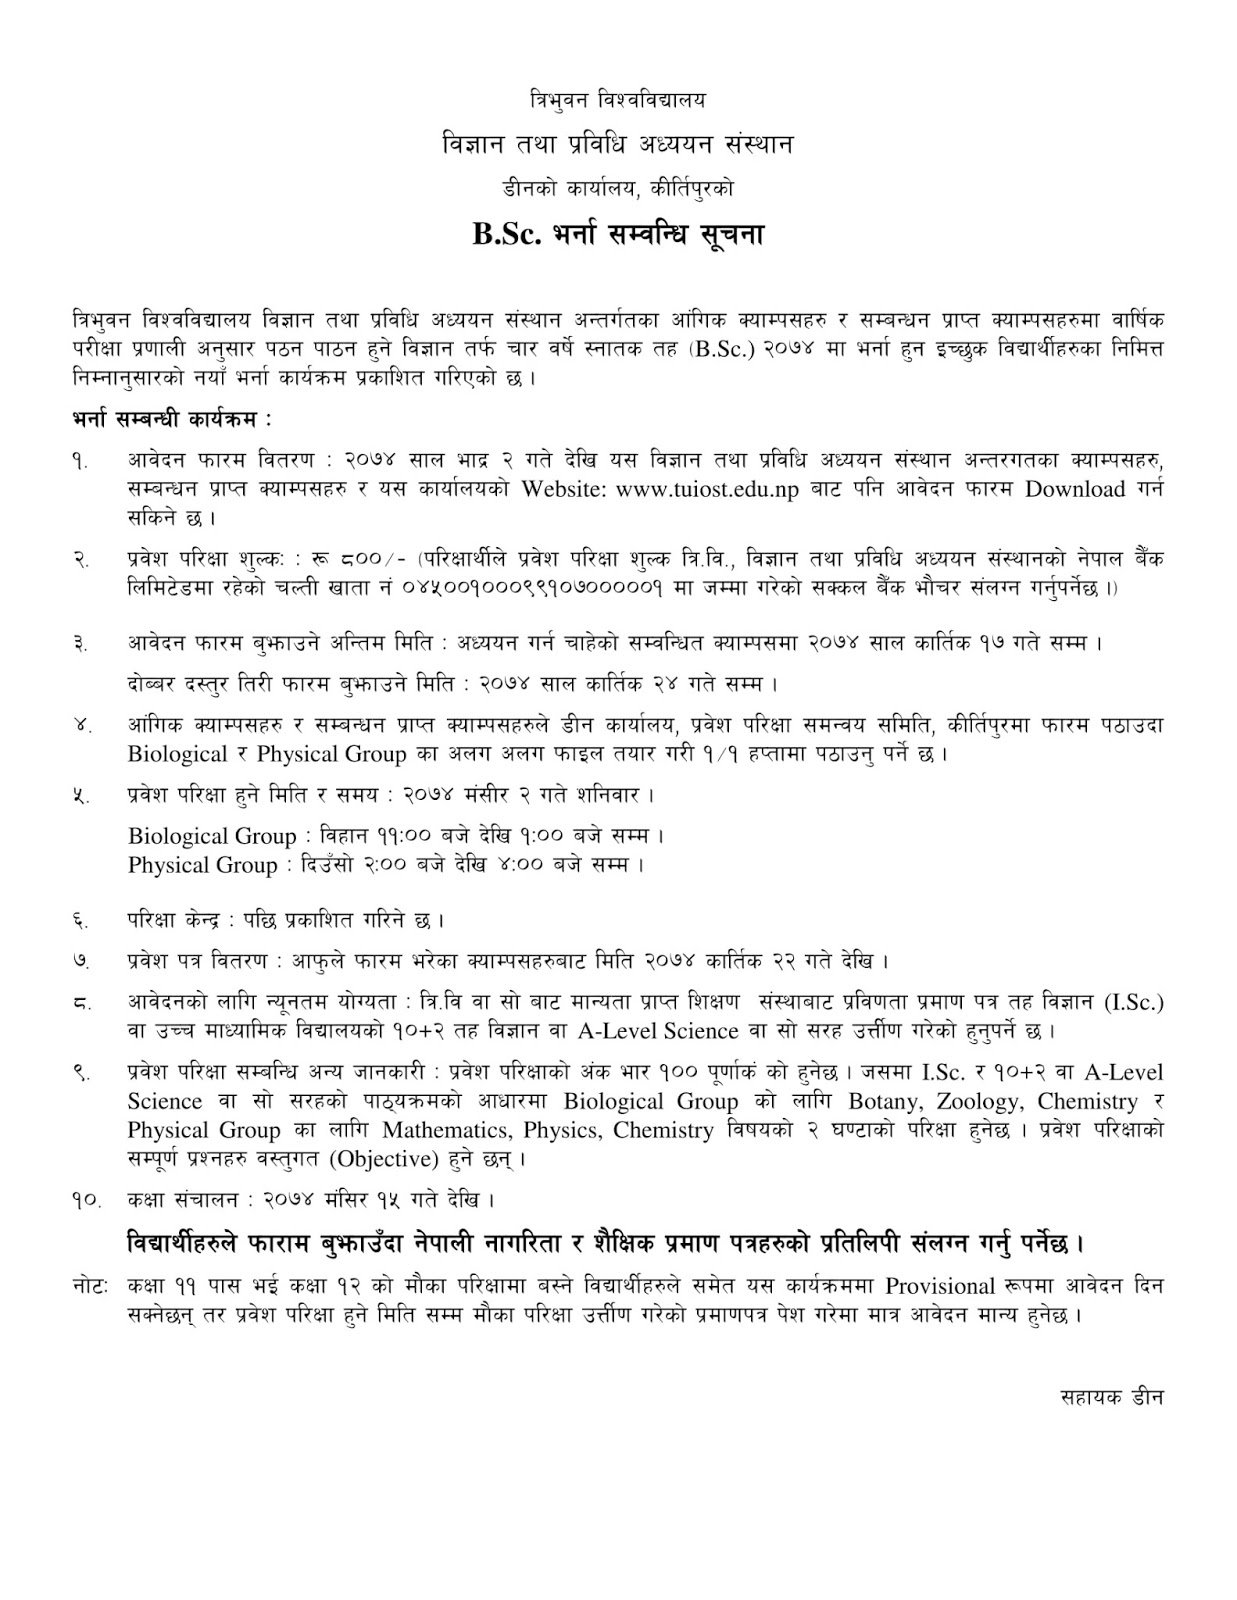 Tribhuvan University publishes B.Sc Entrance Exam Notice 2074